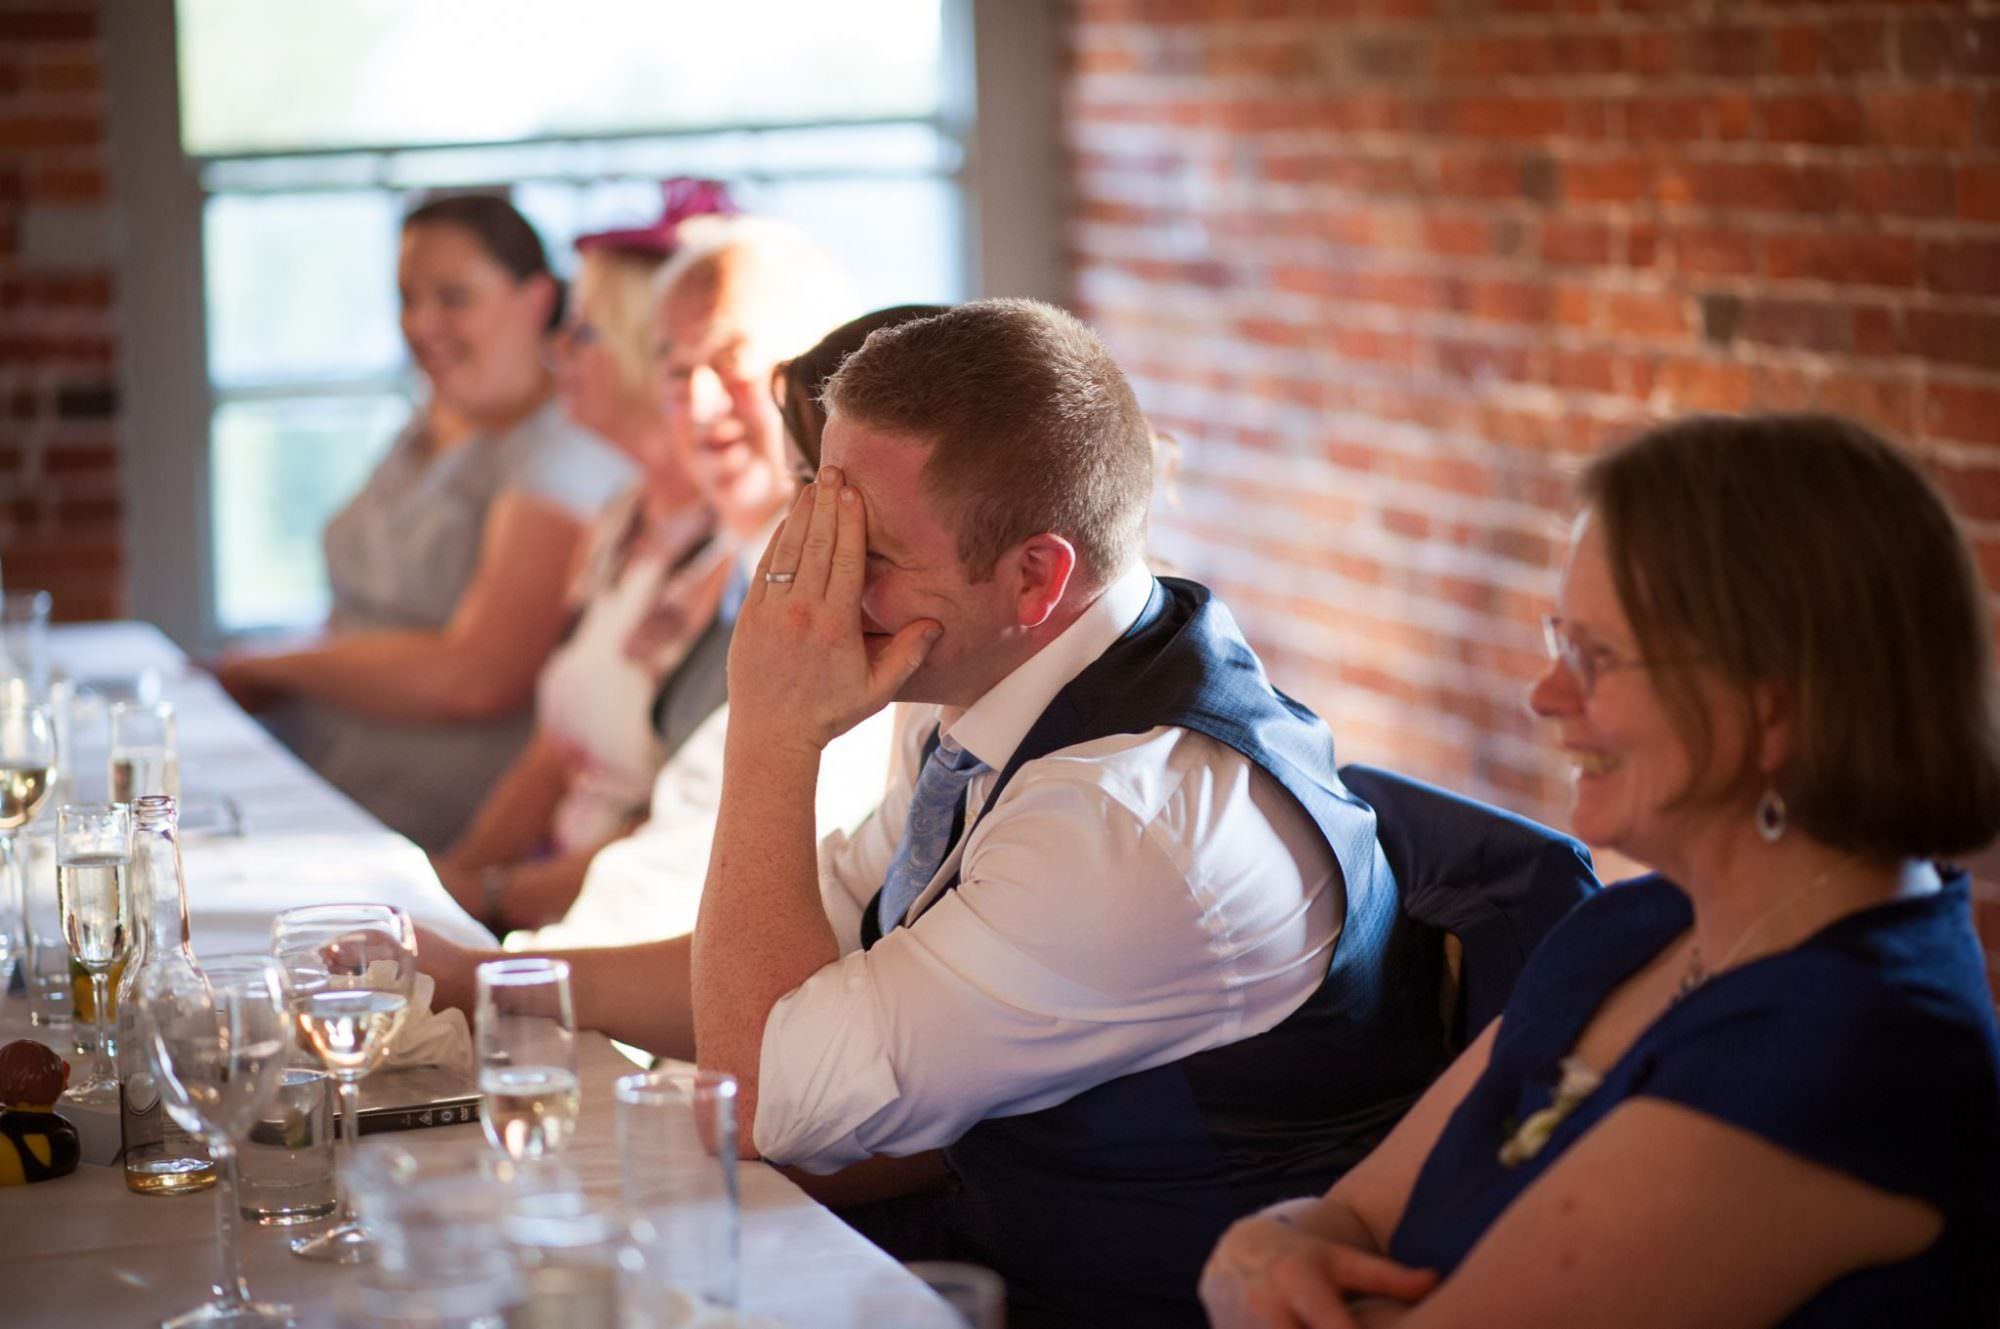 Embarrassing the groom during the best man speech